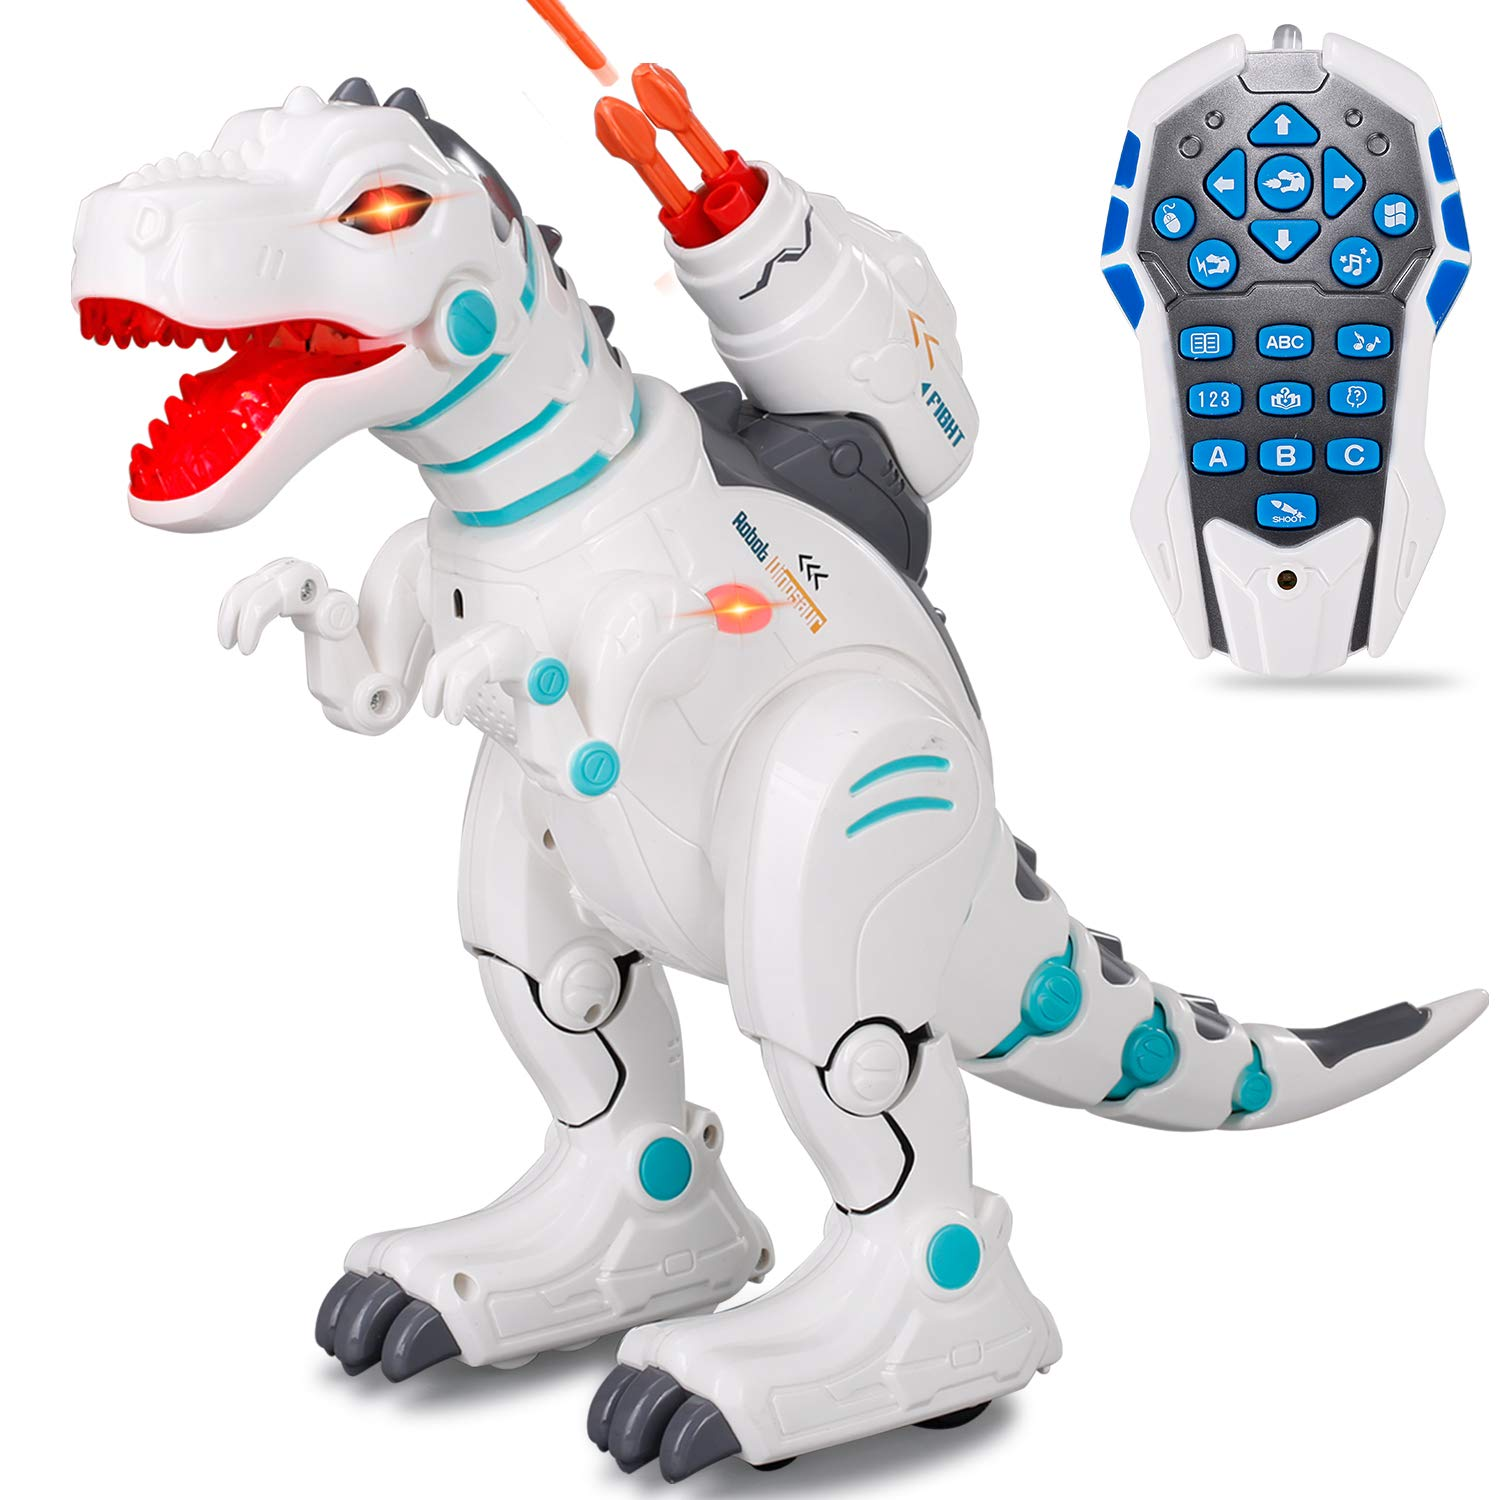 JIEQI Remote Control Dinosaur Robot for Kids,Intelligent Robot Toys Sings  Dances Sprays Mist Launches Missiles Walking Fight Models Electronic RC